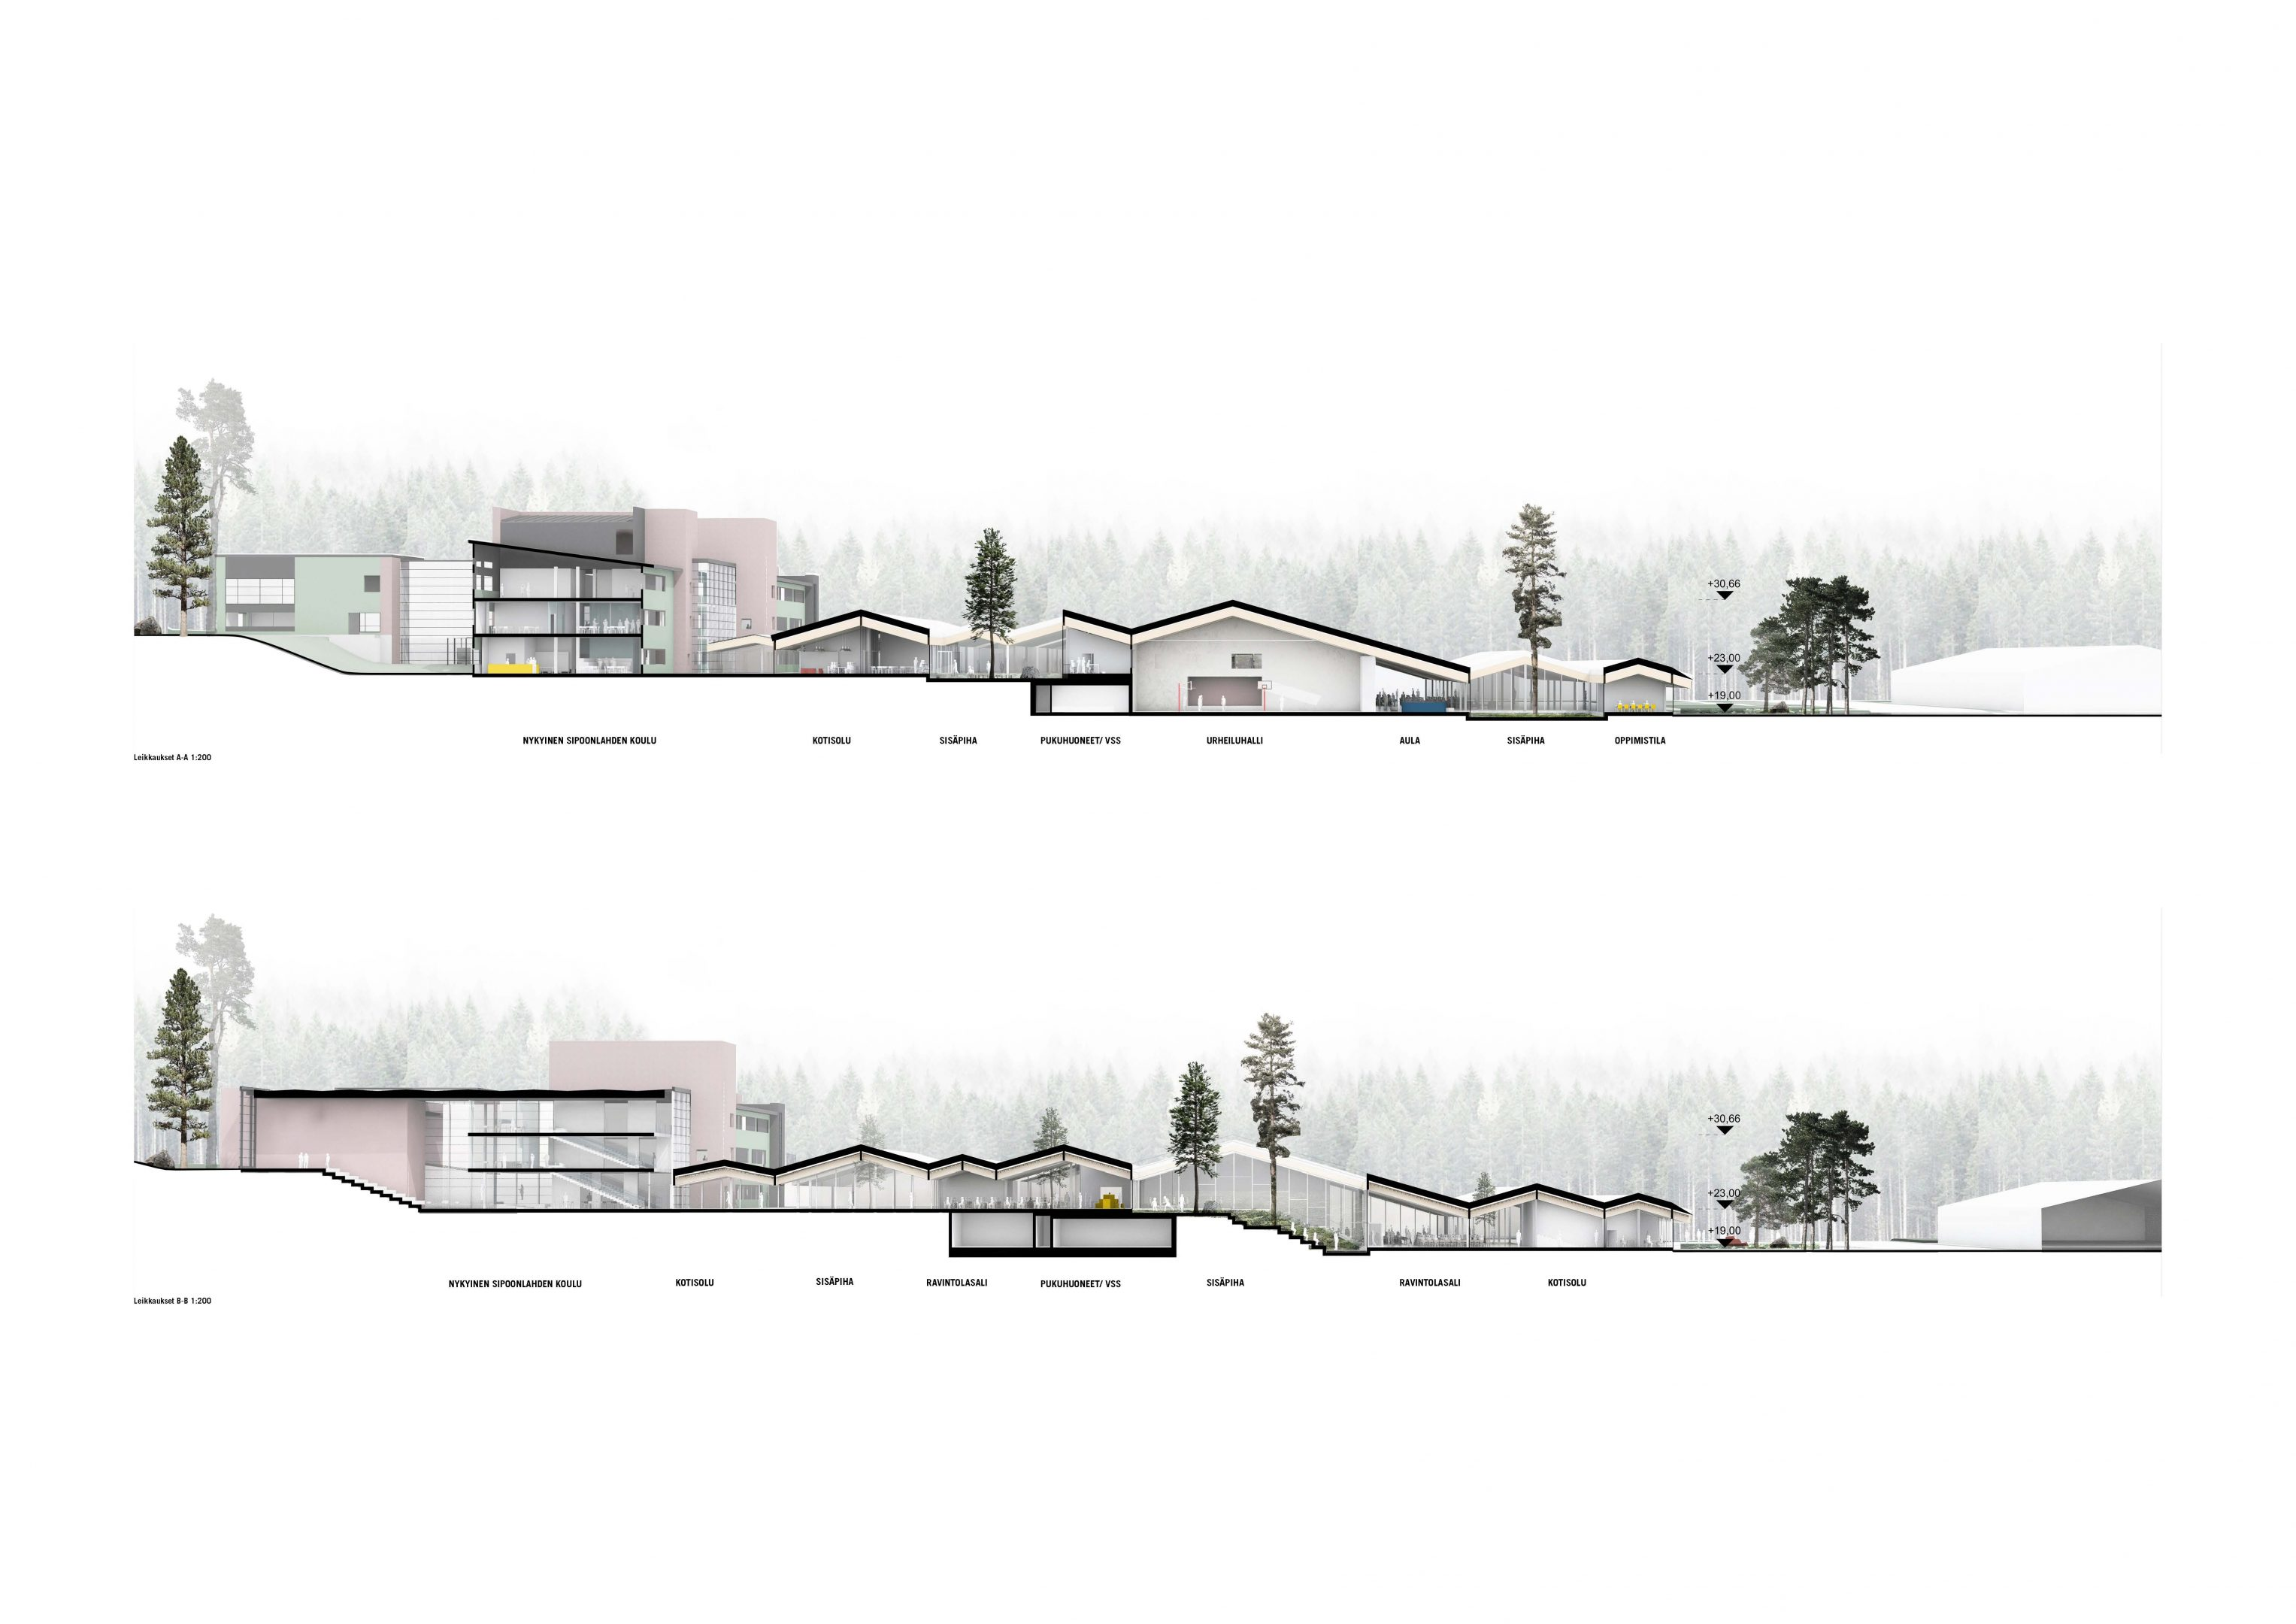 lunden-architecture-company-cobe_sipoonlahti-school_sections_web_page_1